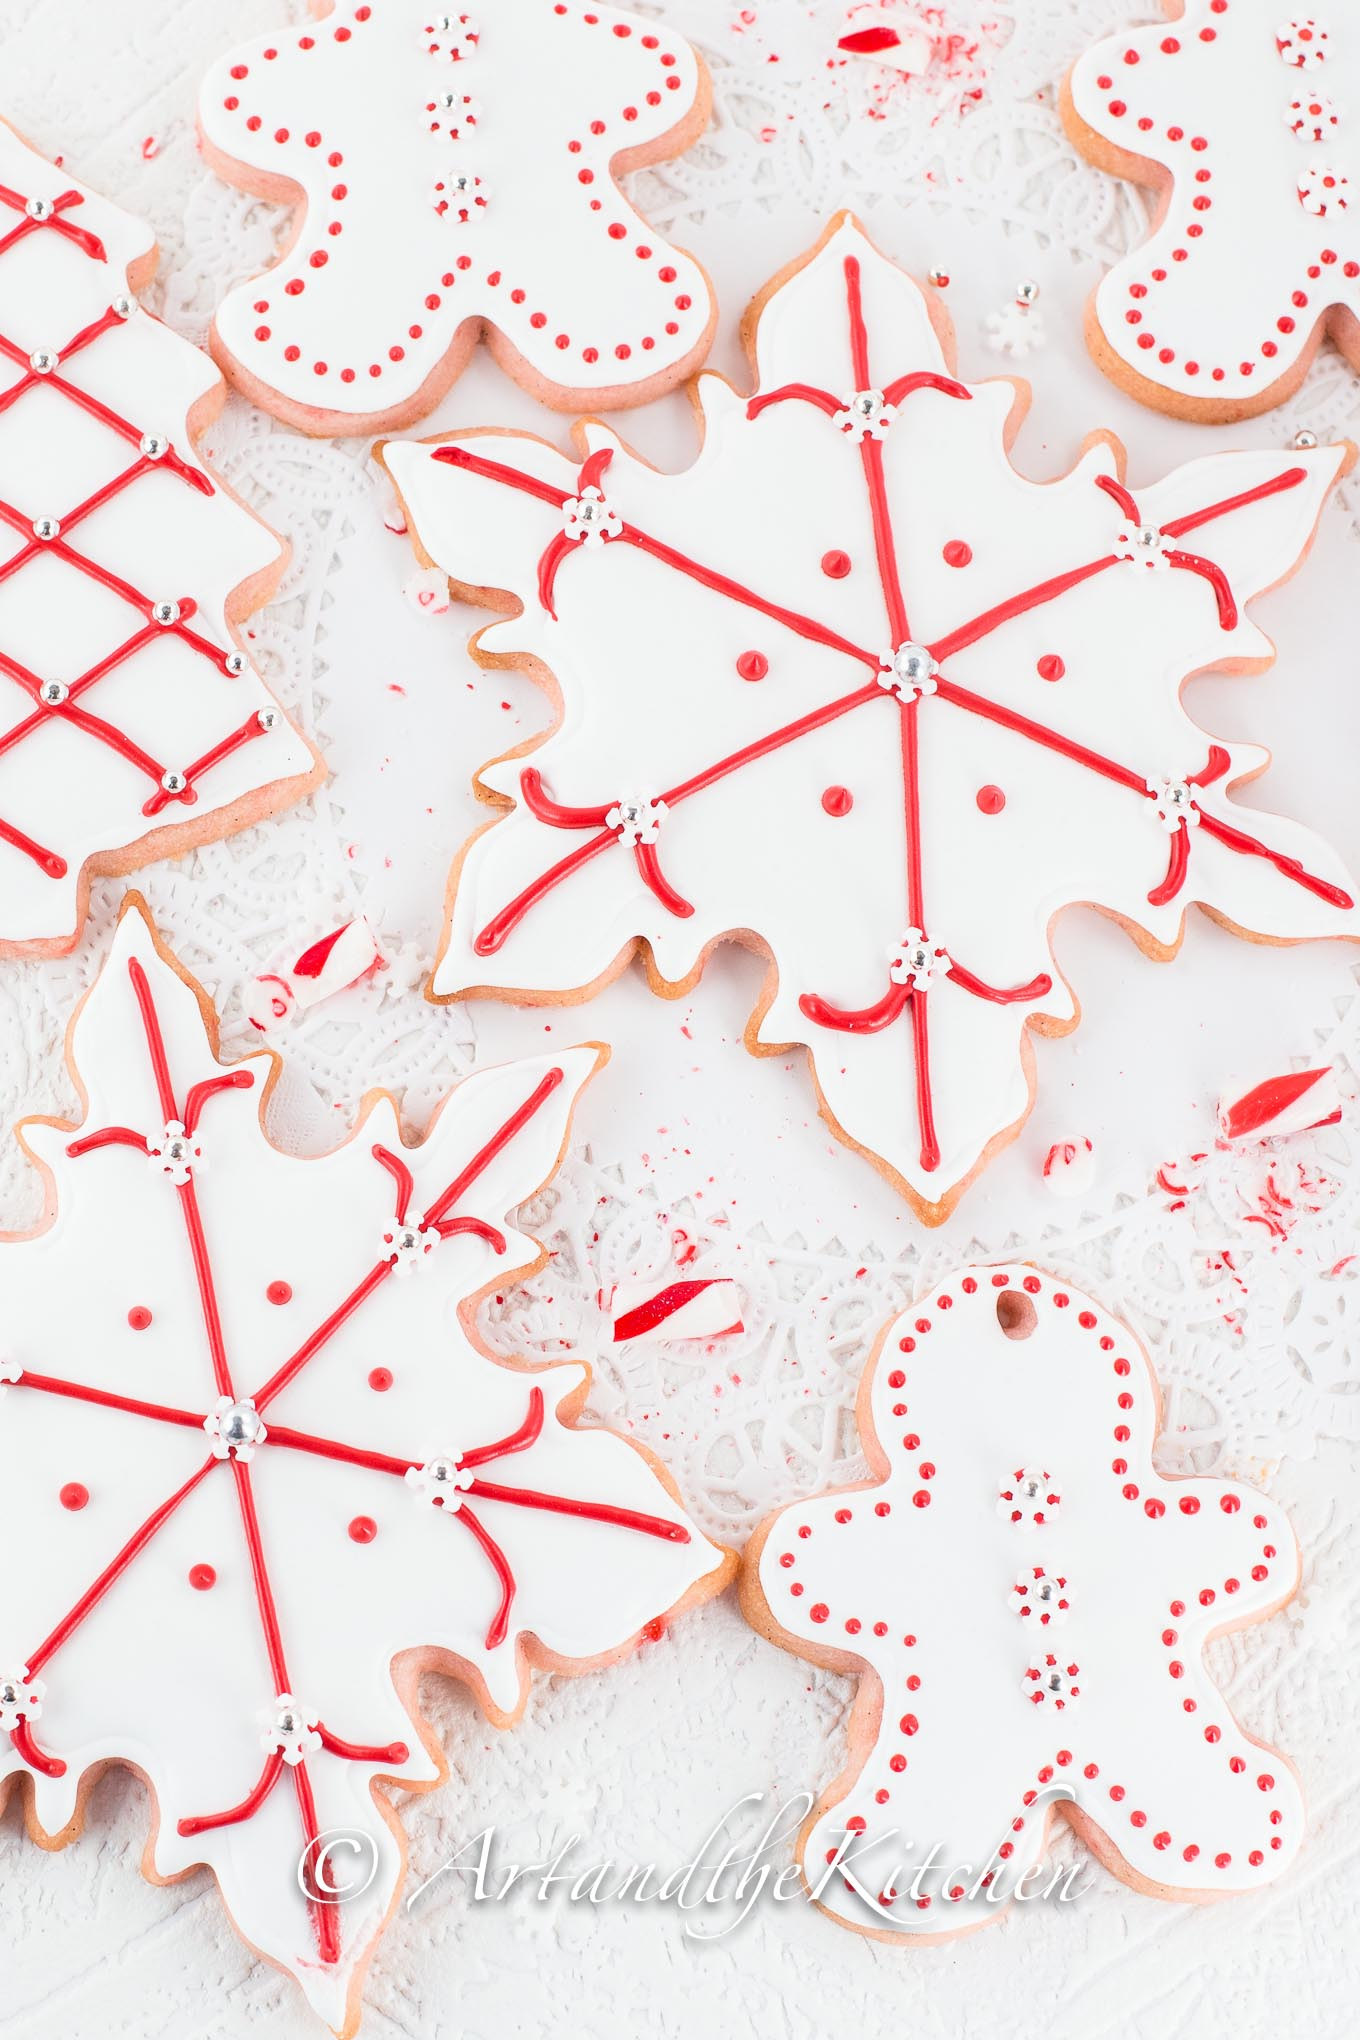 Tray of sugar cookies decorated with white and red royal icing.